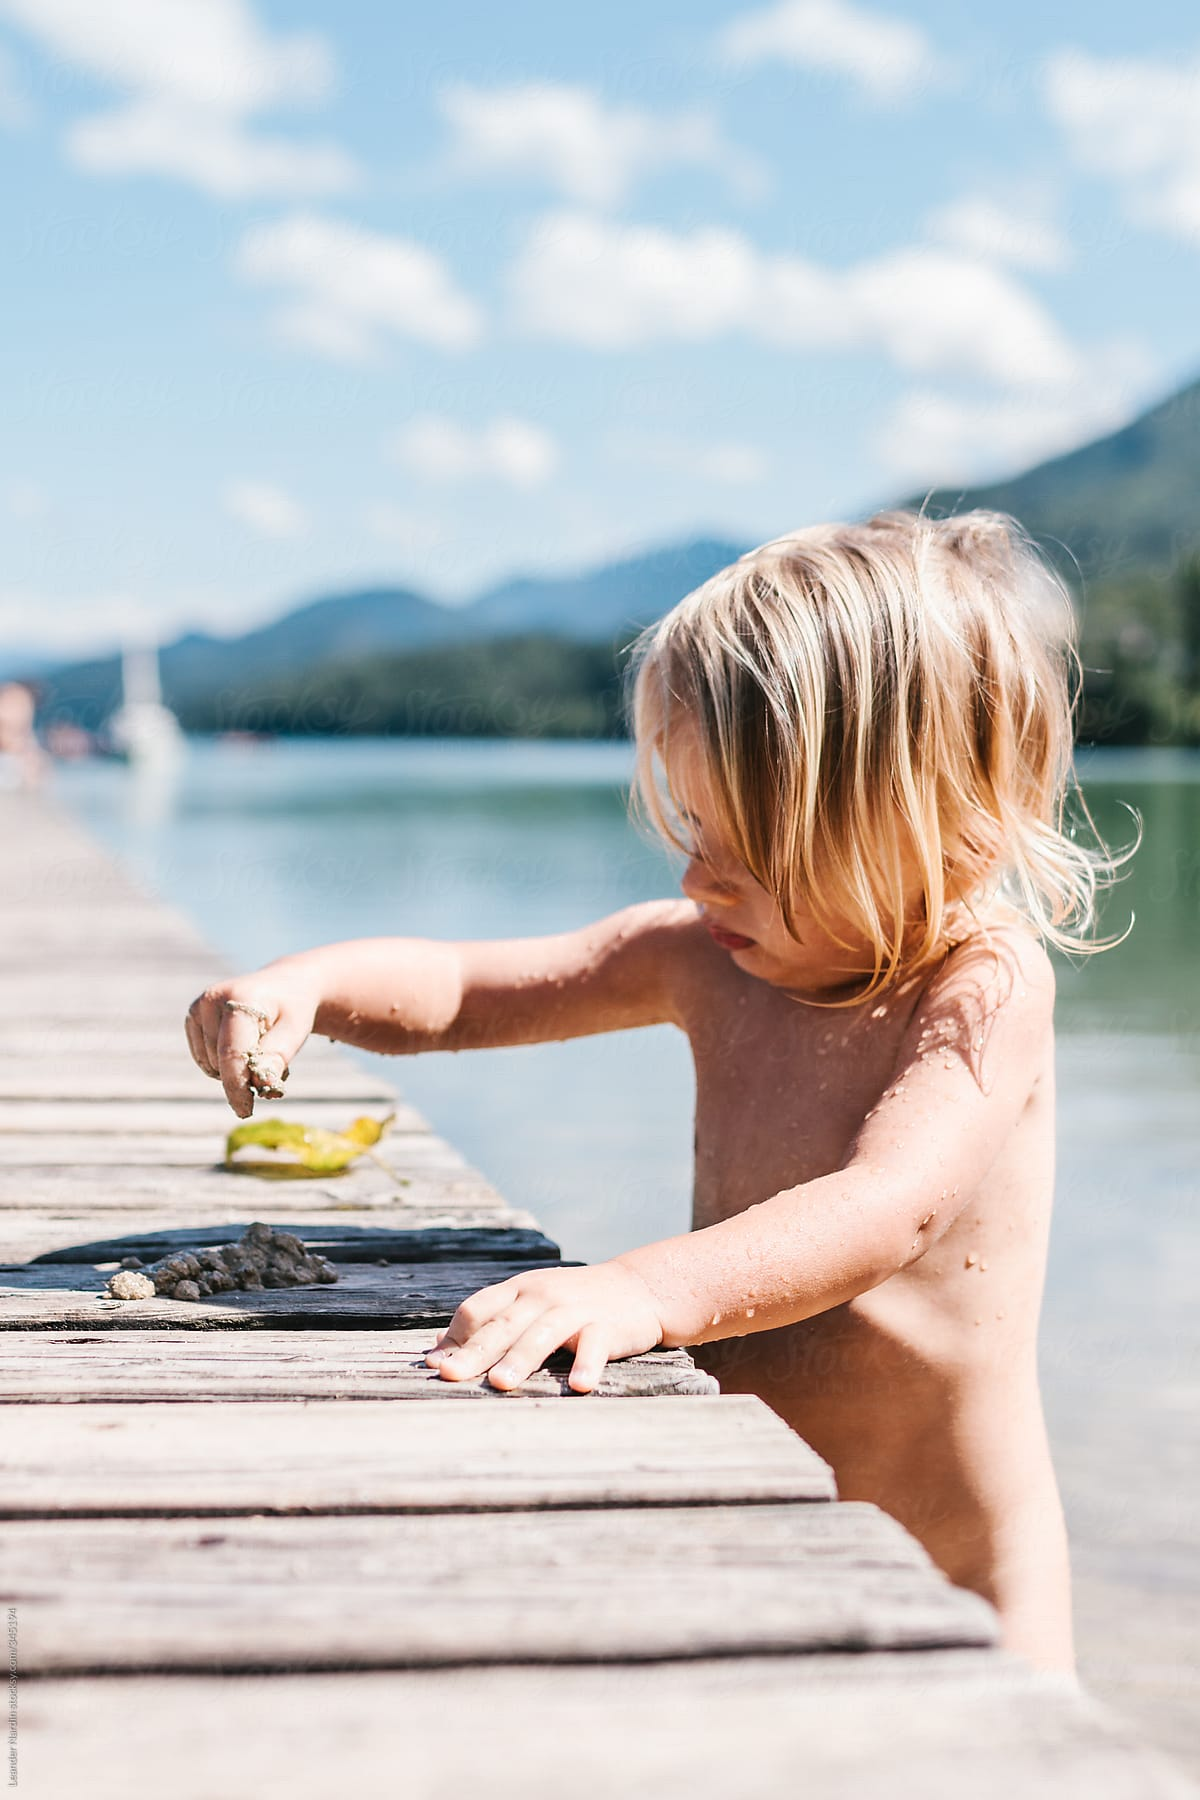 Naked Toddler Playing With Wet Sand On A Jetty At The Lake